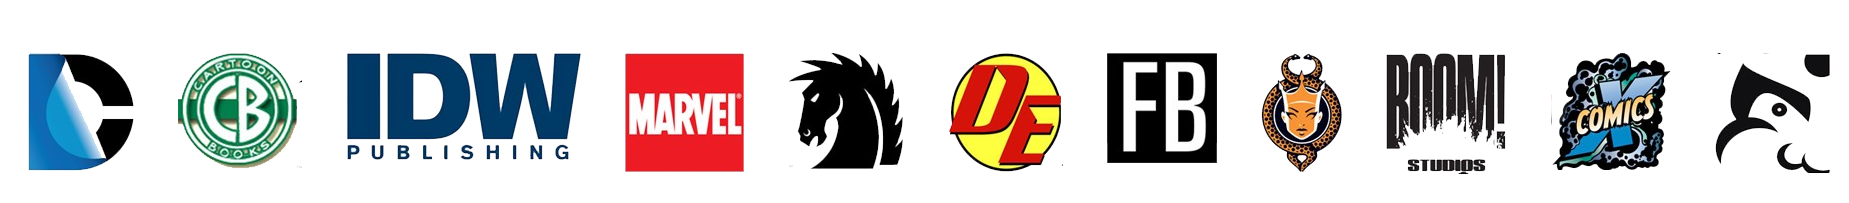 comic_brands_banner.png